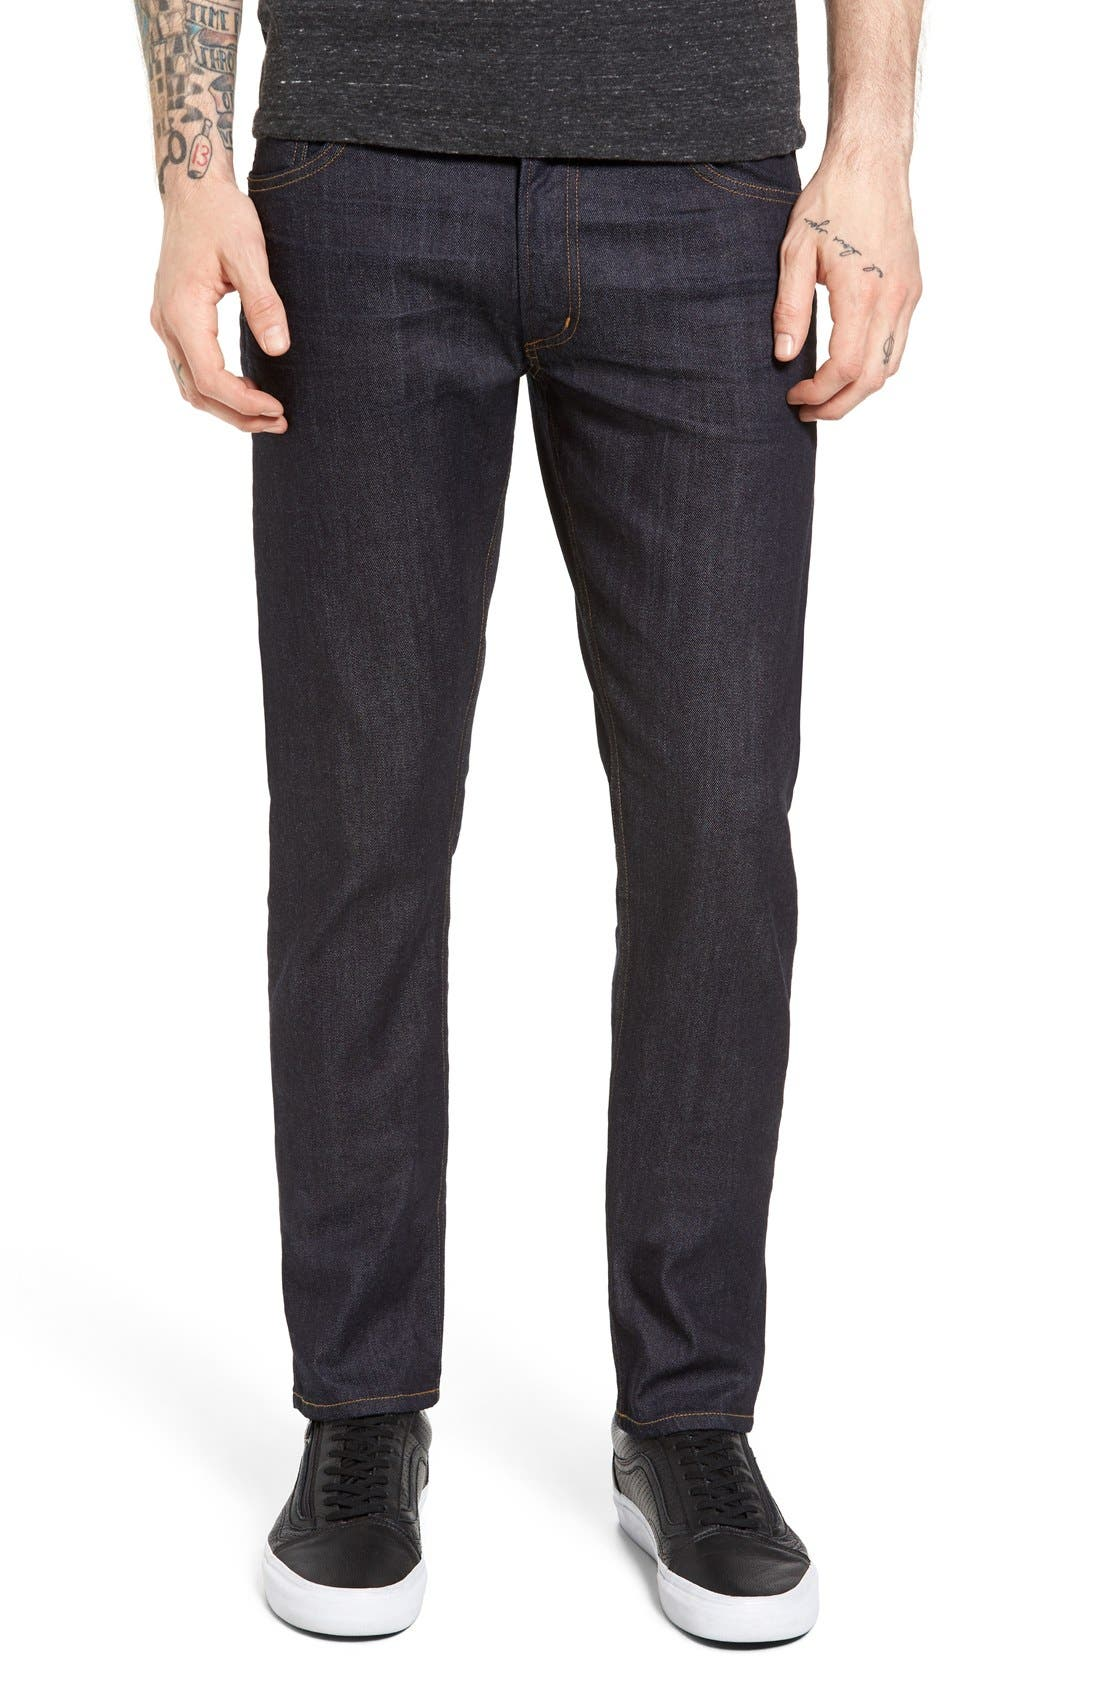 Alternate Image 1 Selected - Citizens of Humanity Bowery Slim Fit Jeans (Lafayette)